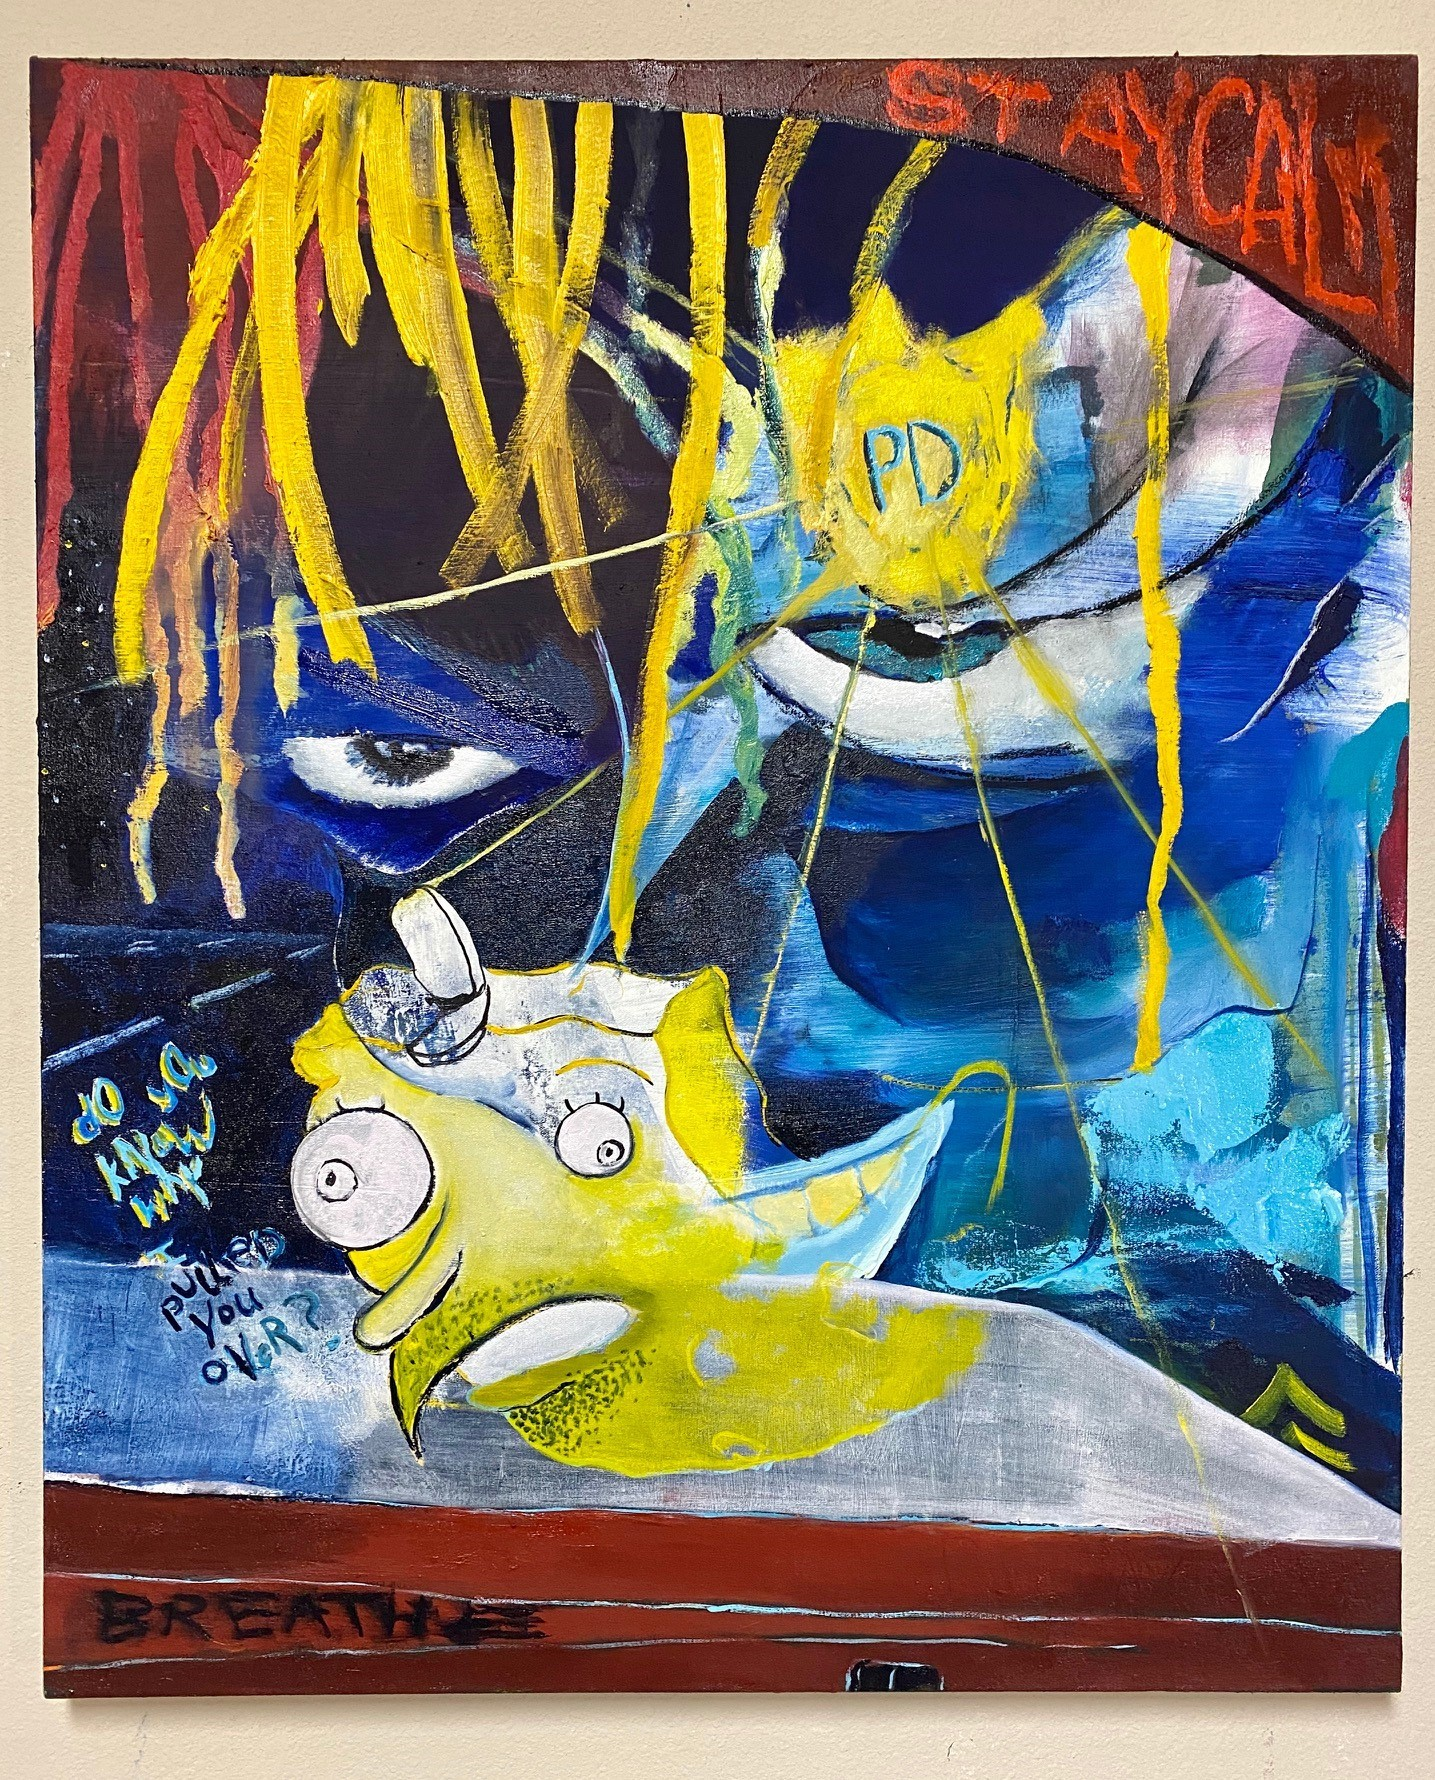 An abstract painting featuring the cartoon character SpongeBob SquarePants, being watched by the eyes of a police officer